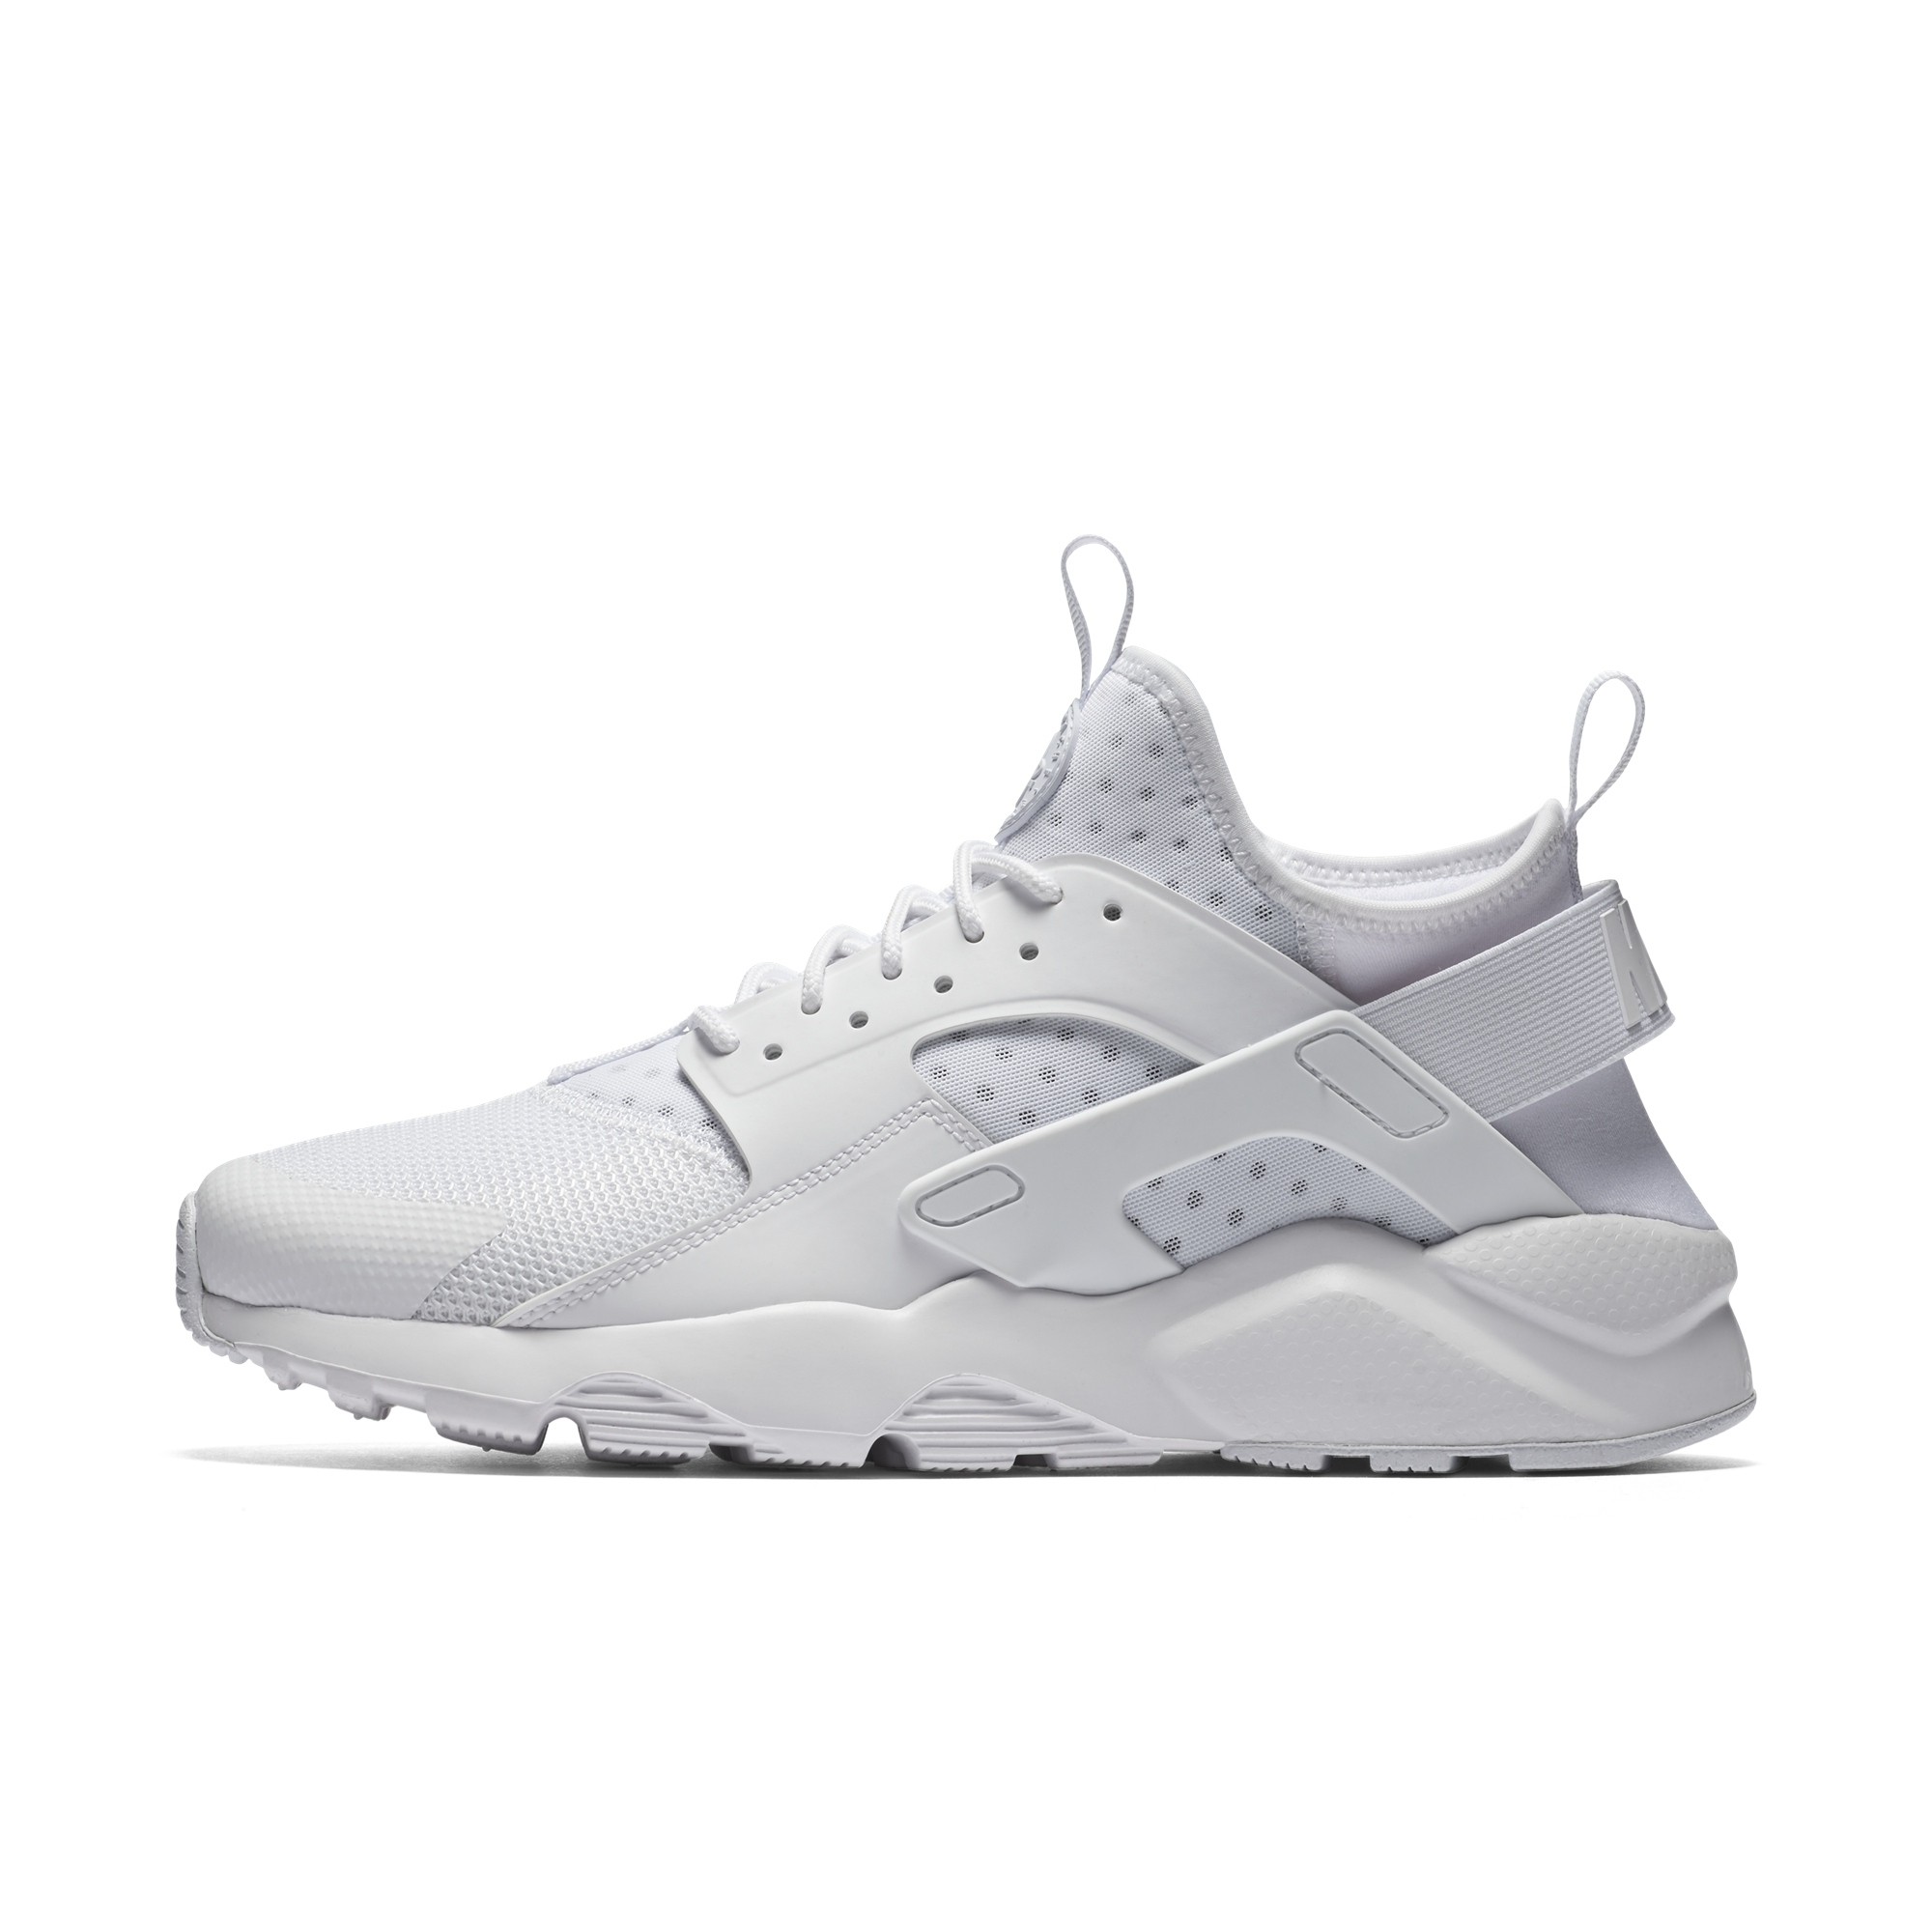 1fbceec21da8 Original Official NIKE AIR HUARACHE RUN ULTRA Men s Running Shoes Sneakers  819685 Outdoor Ultra Boost Athletic Durable 819685-in Running Shoes from  Sports ...